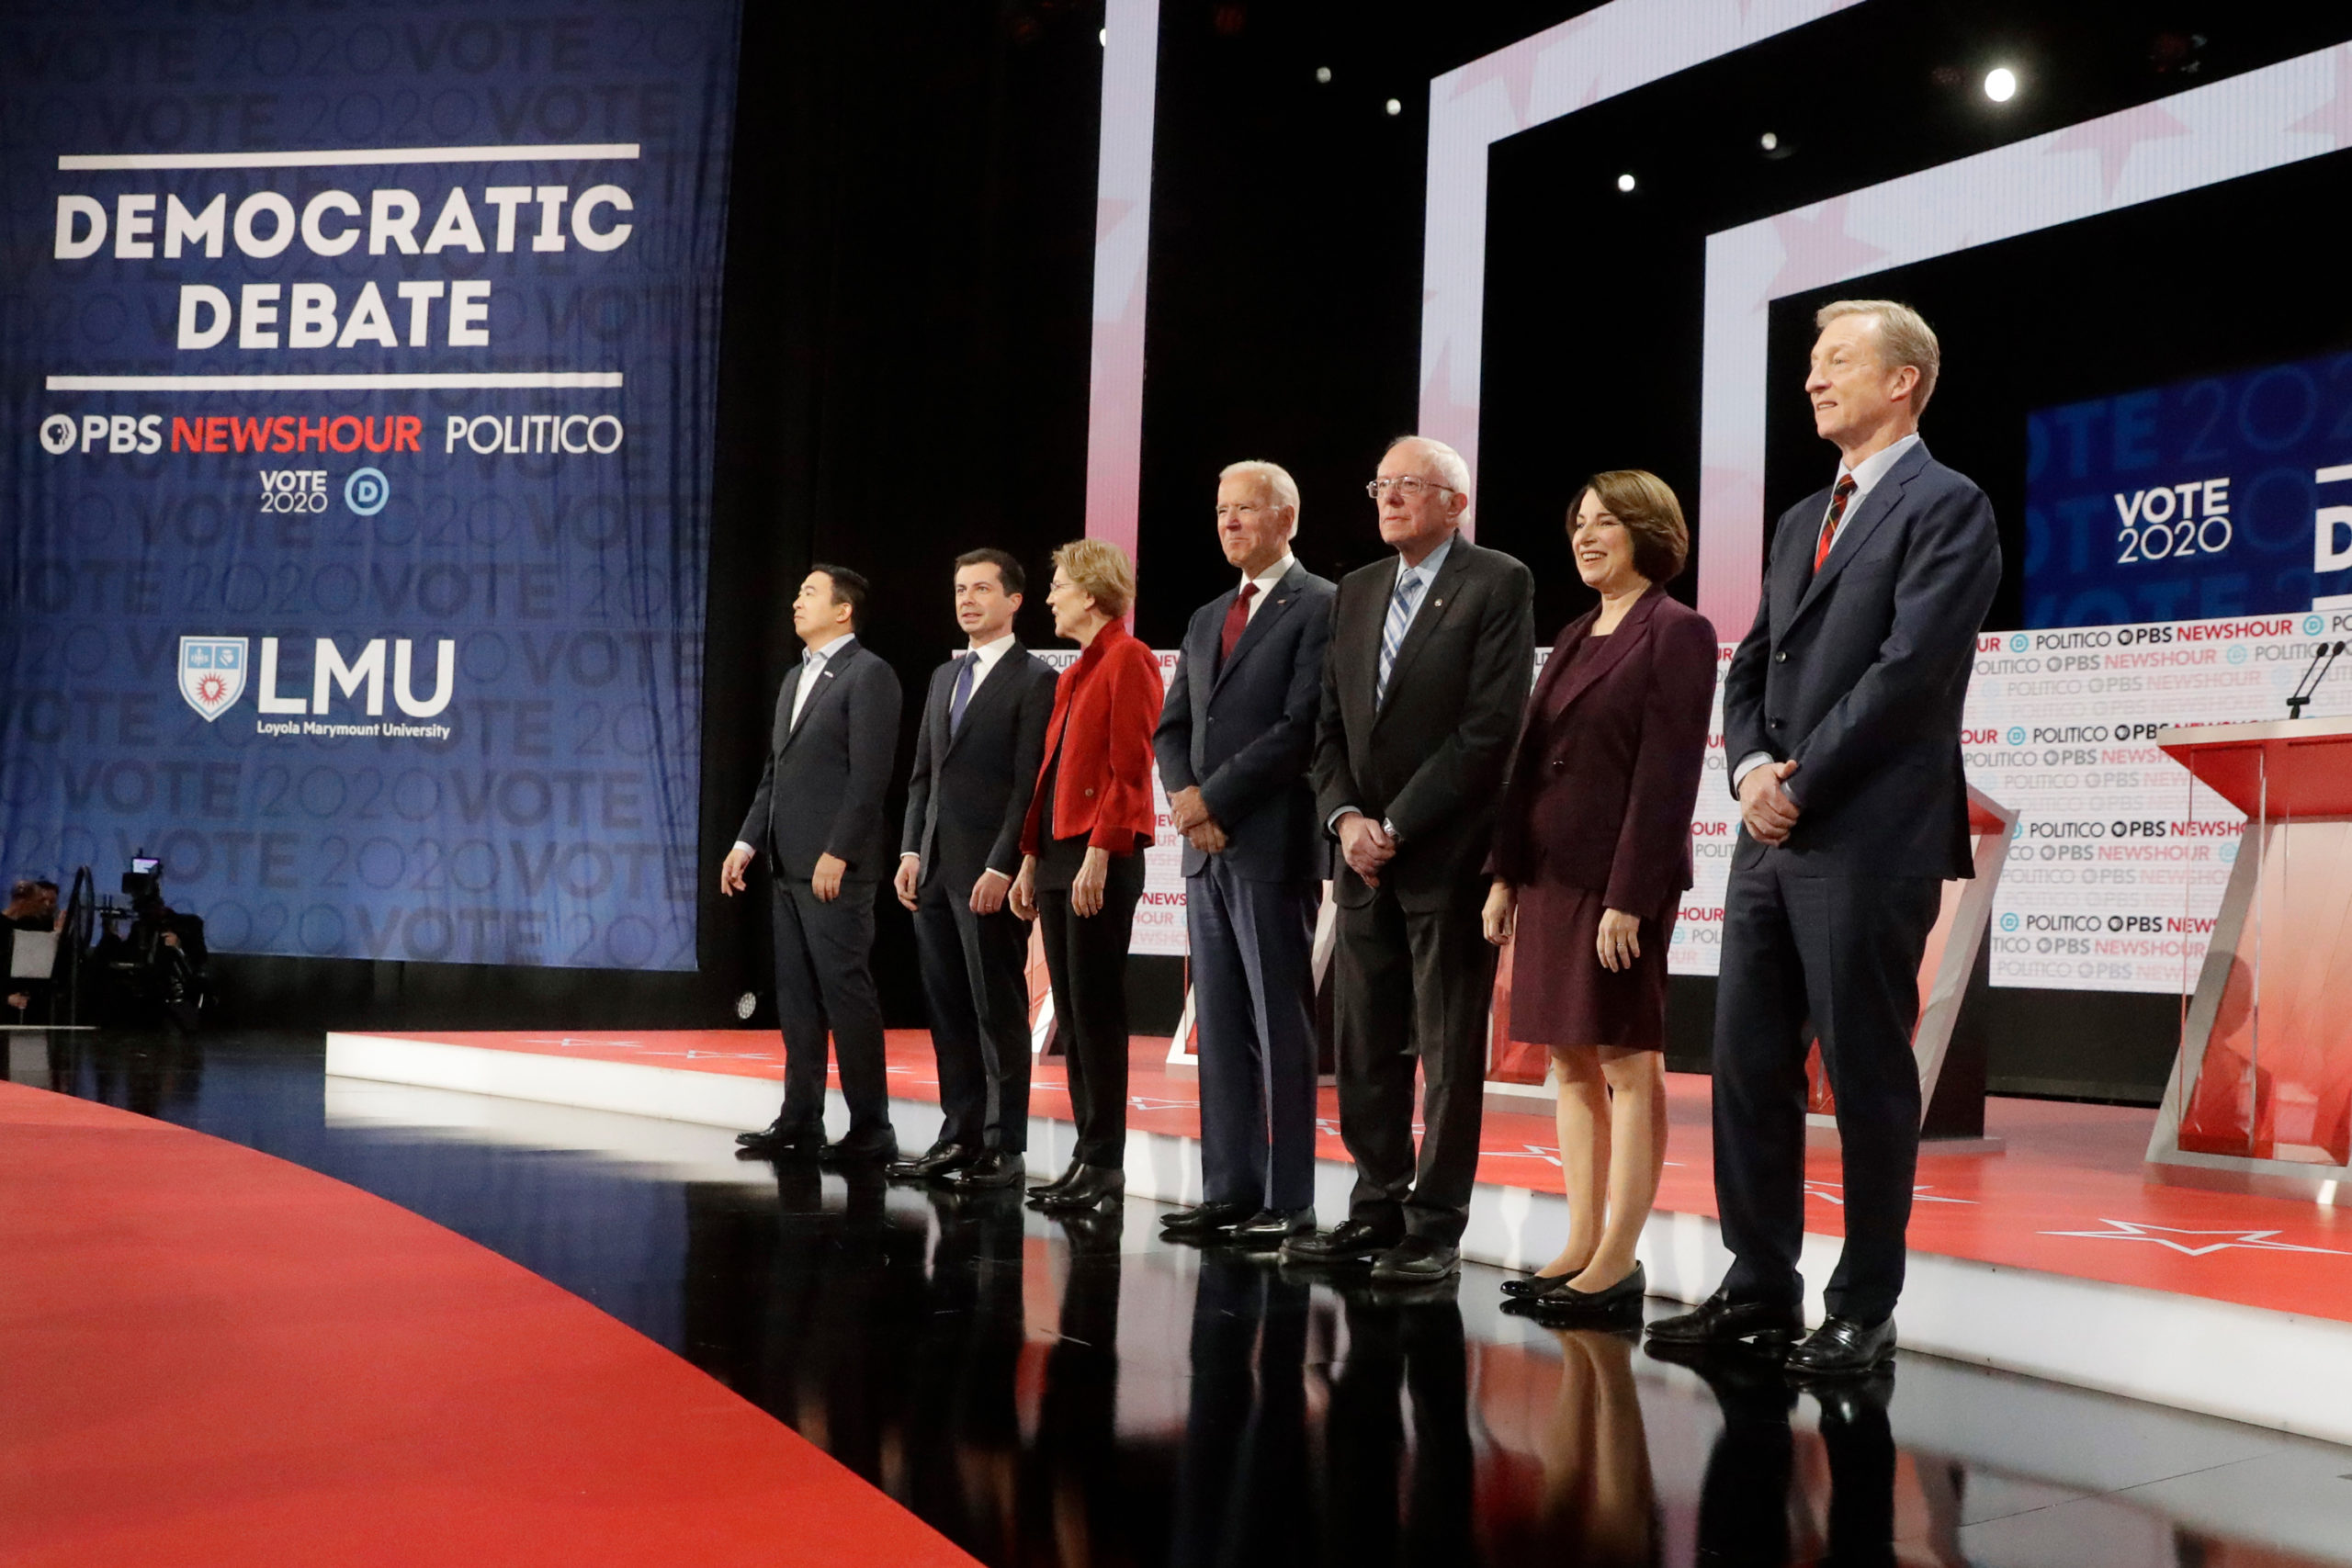 Democratic presidential candidates from left, entrepreneur Andrew Yang, South Bend Mayor Pete Buttigieg, Sen. Elizabeth Warren, D-Mass., former Vice President Joe Biden, Sen. Bernie Sanders, I-Vt., Sen. Amy Klobuchar, D-Minn., and businessman Tom Steyer stand on stage before a Democratic presidential primary debate Thursday, Dec. 19, 2019, in Los Angeles, Calif.